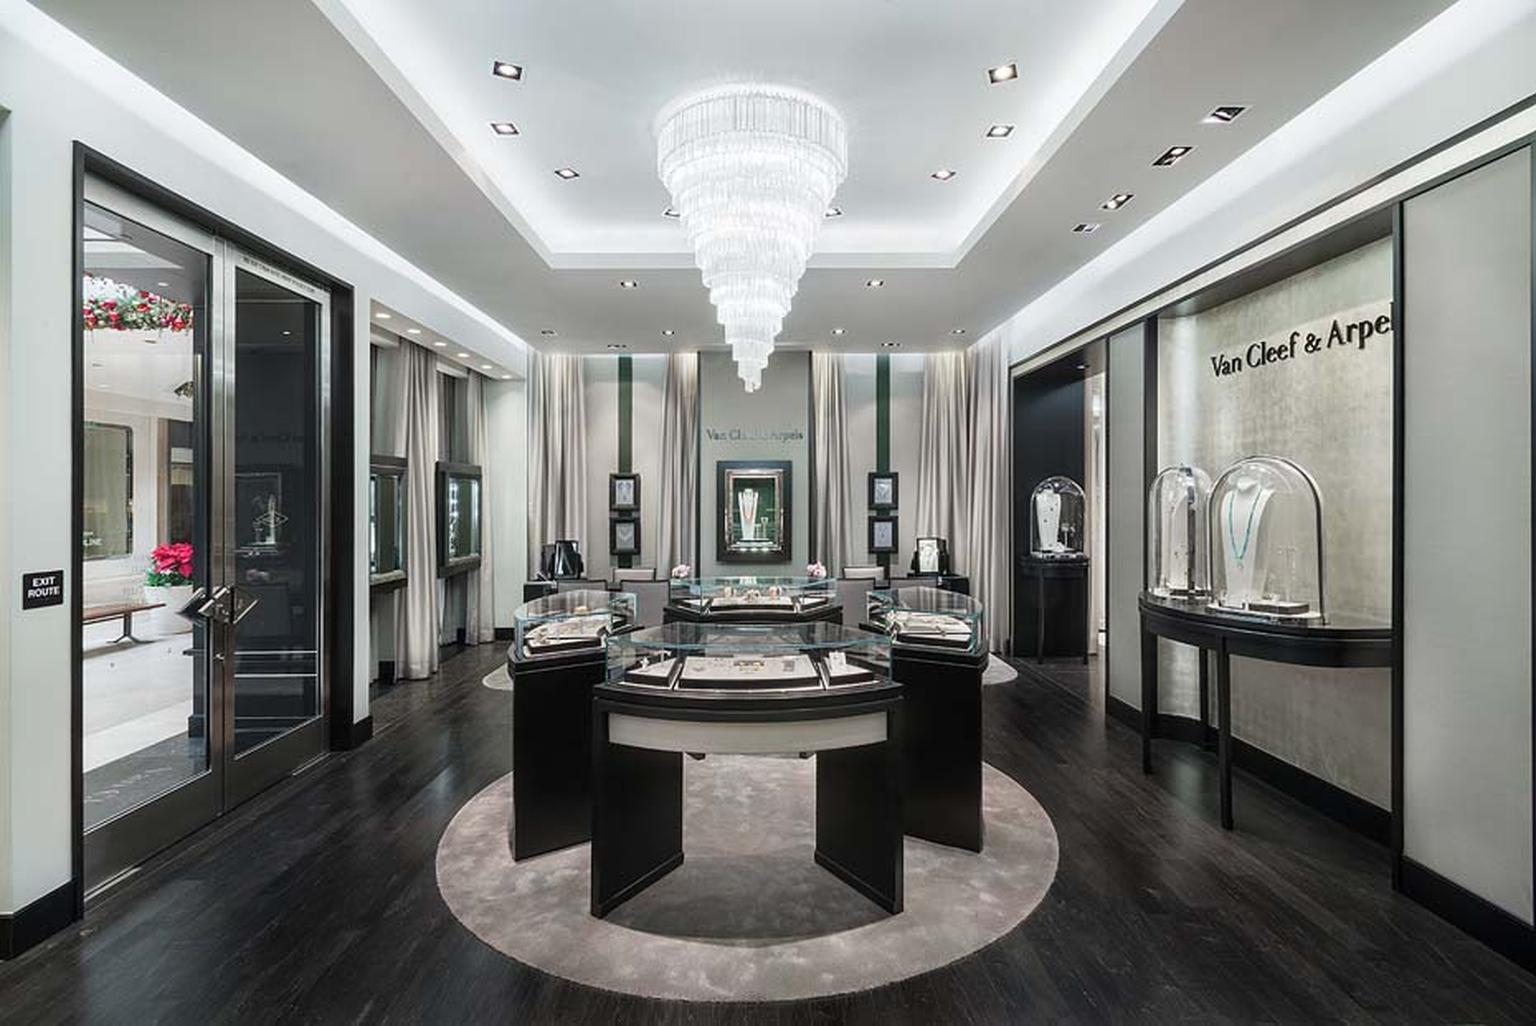 Twice as big as its original space, the Van Cleef & Arpels boutique is decorated with rich silk walls, gold leaf accents and a sophisticated colour scheme